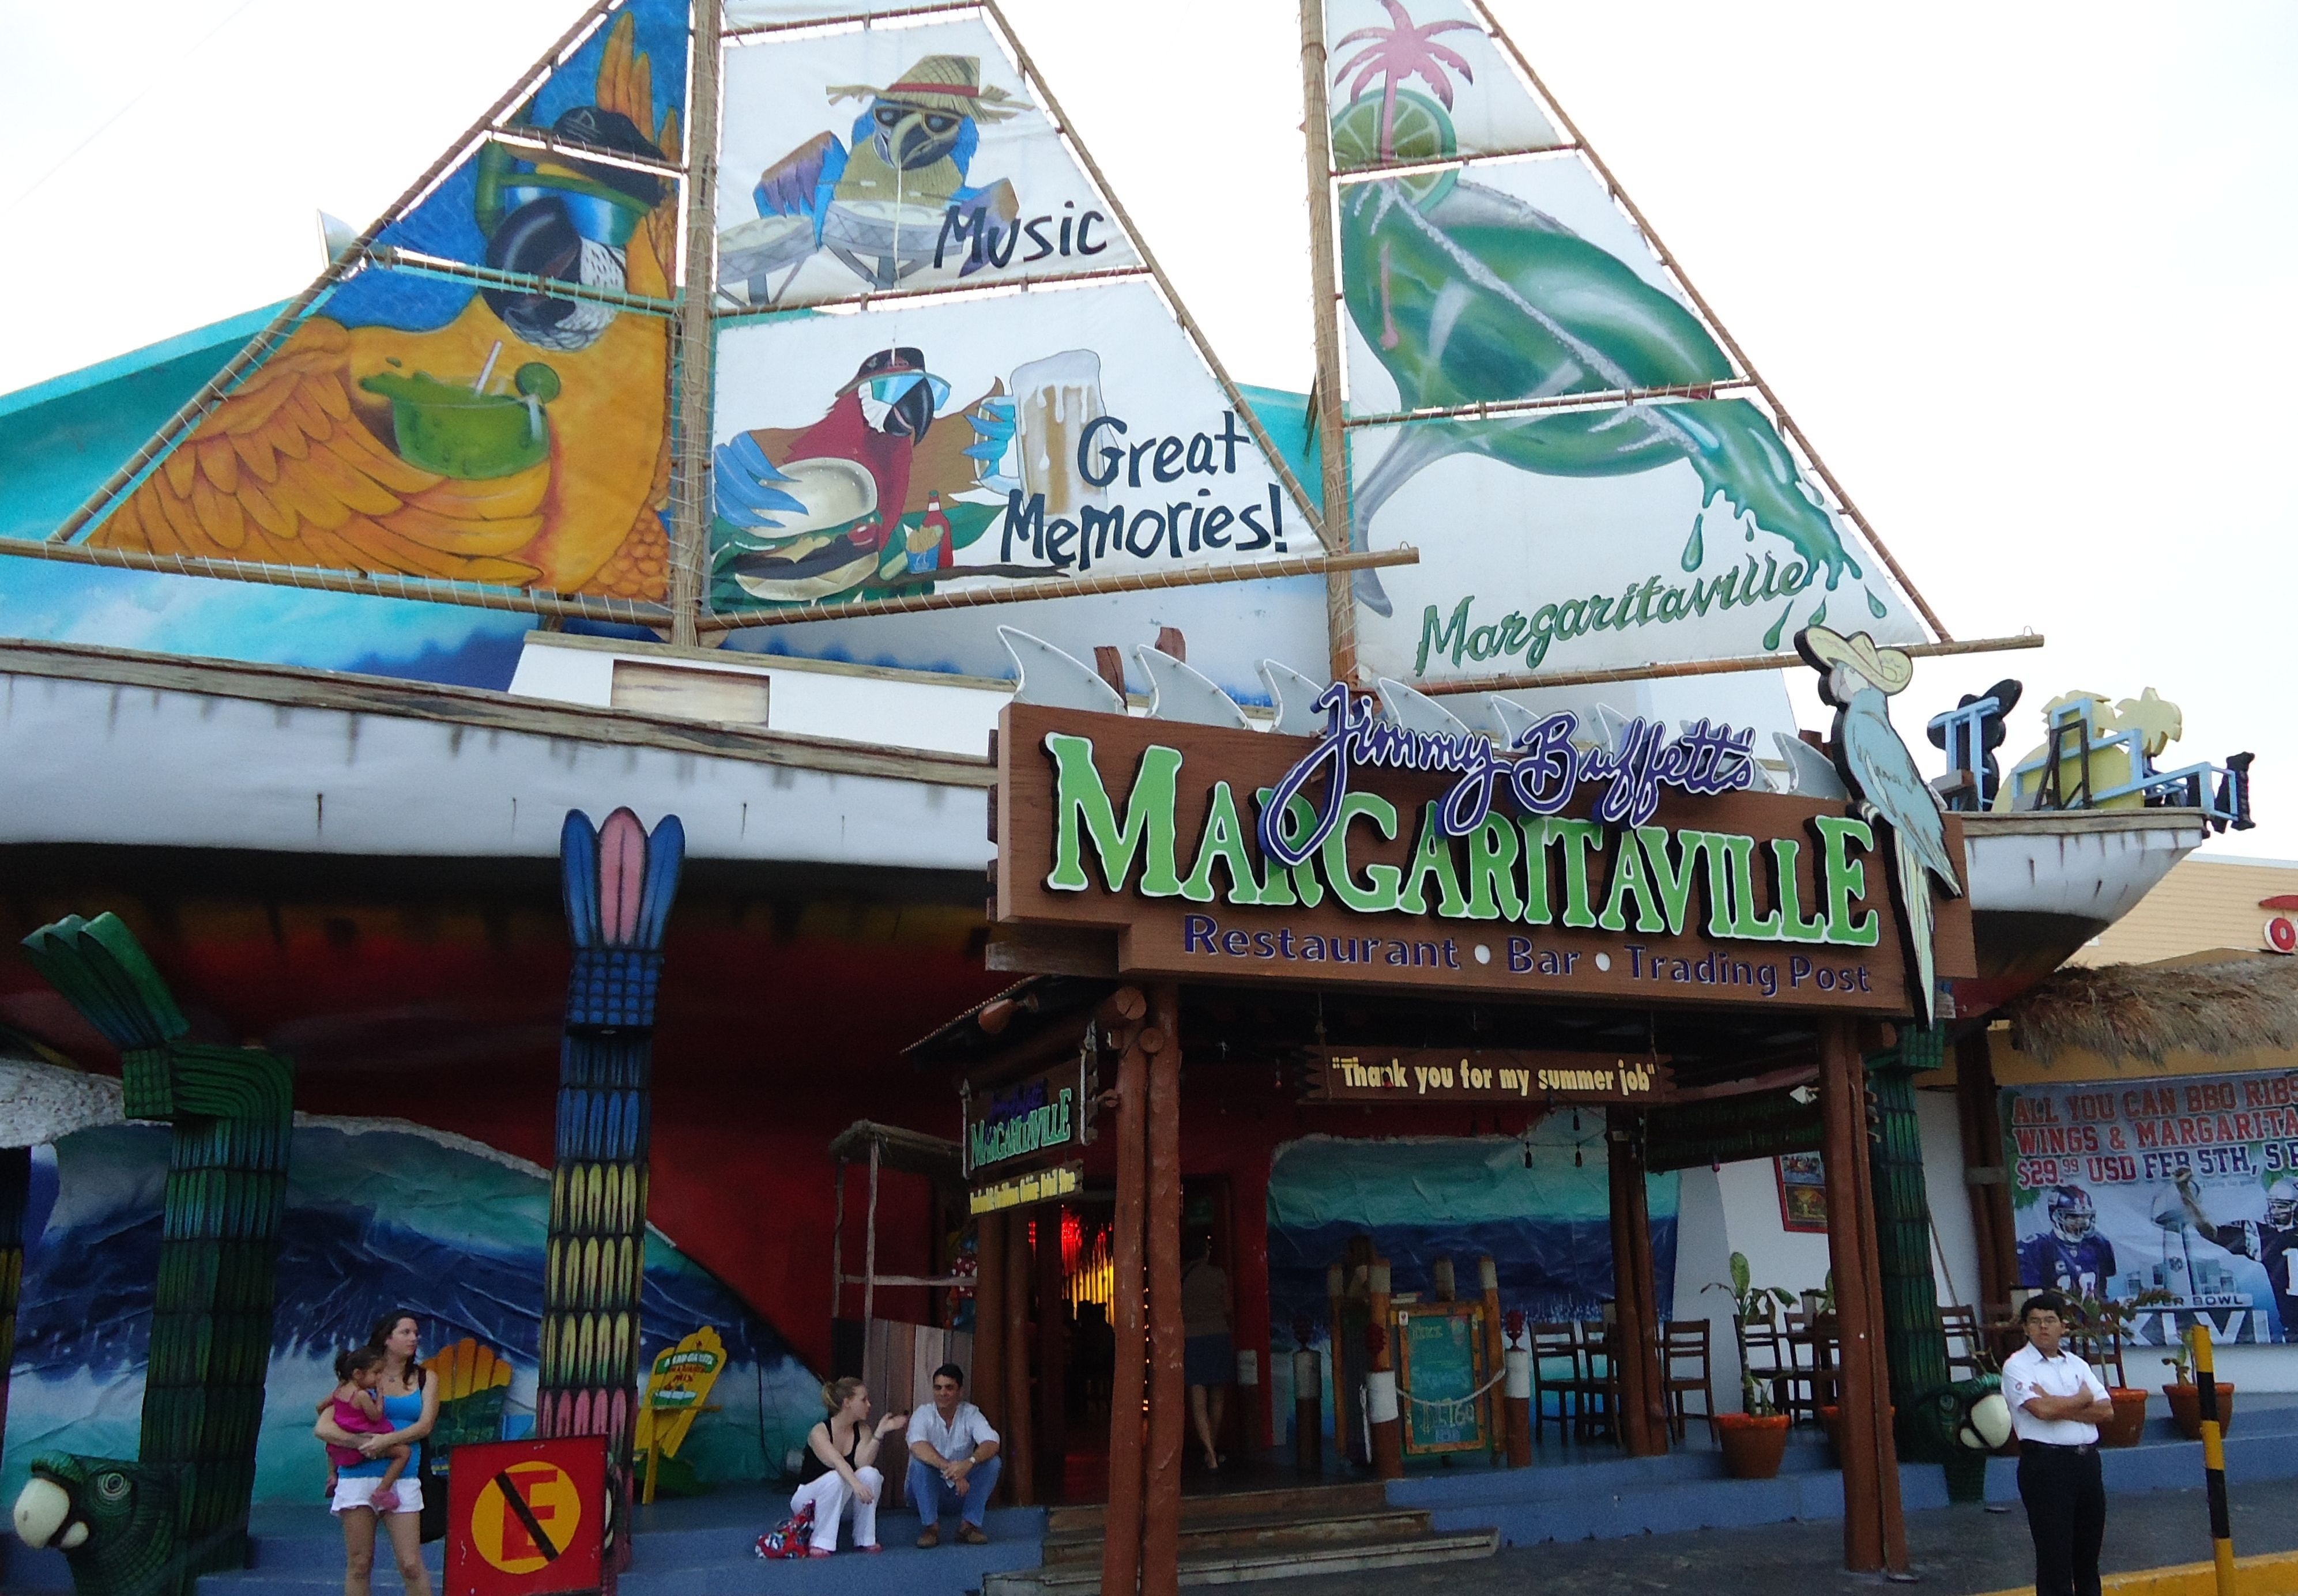 Jimmy Buffetts Margaritaville Is The Mecca For Parrotheads Or Anyone Else Who Wants To Have A Good Time And Great M